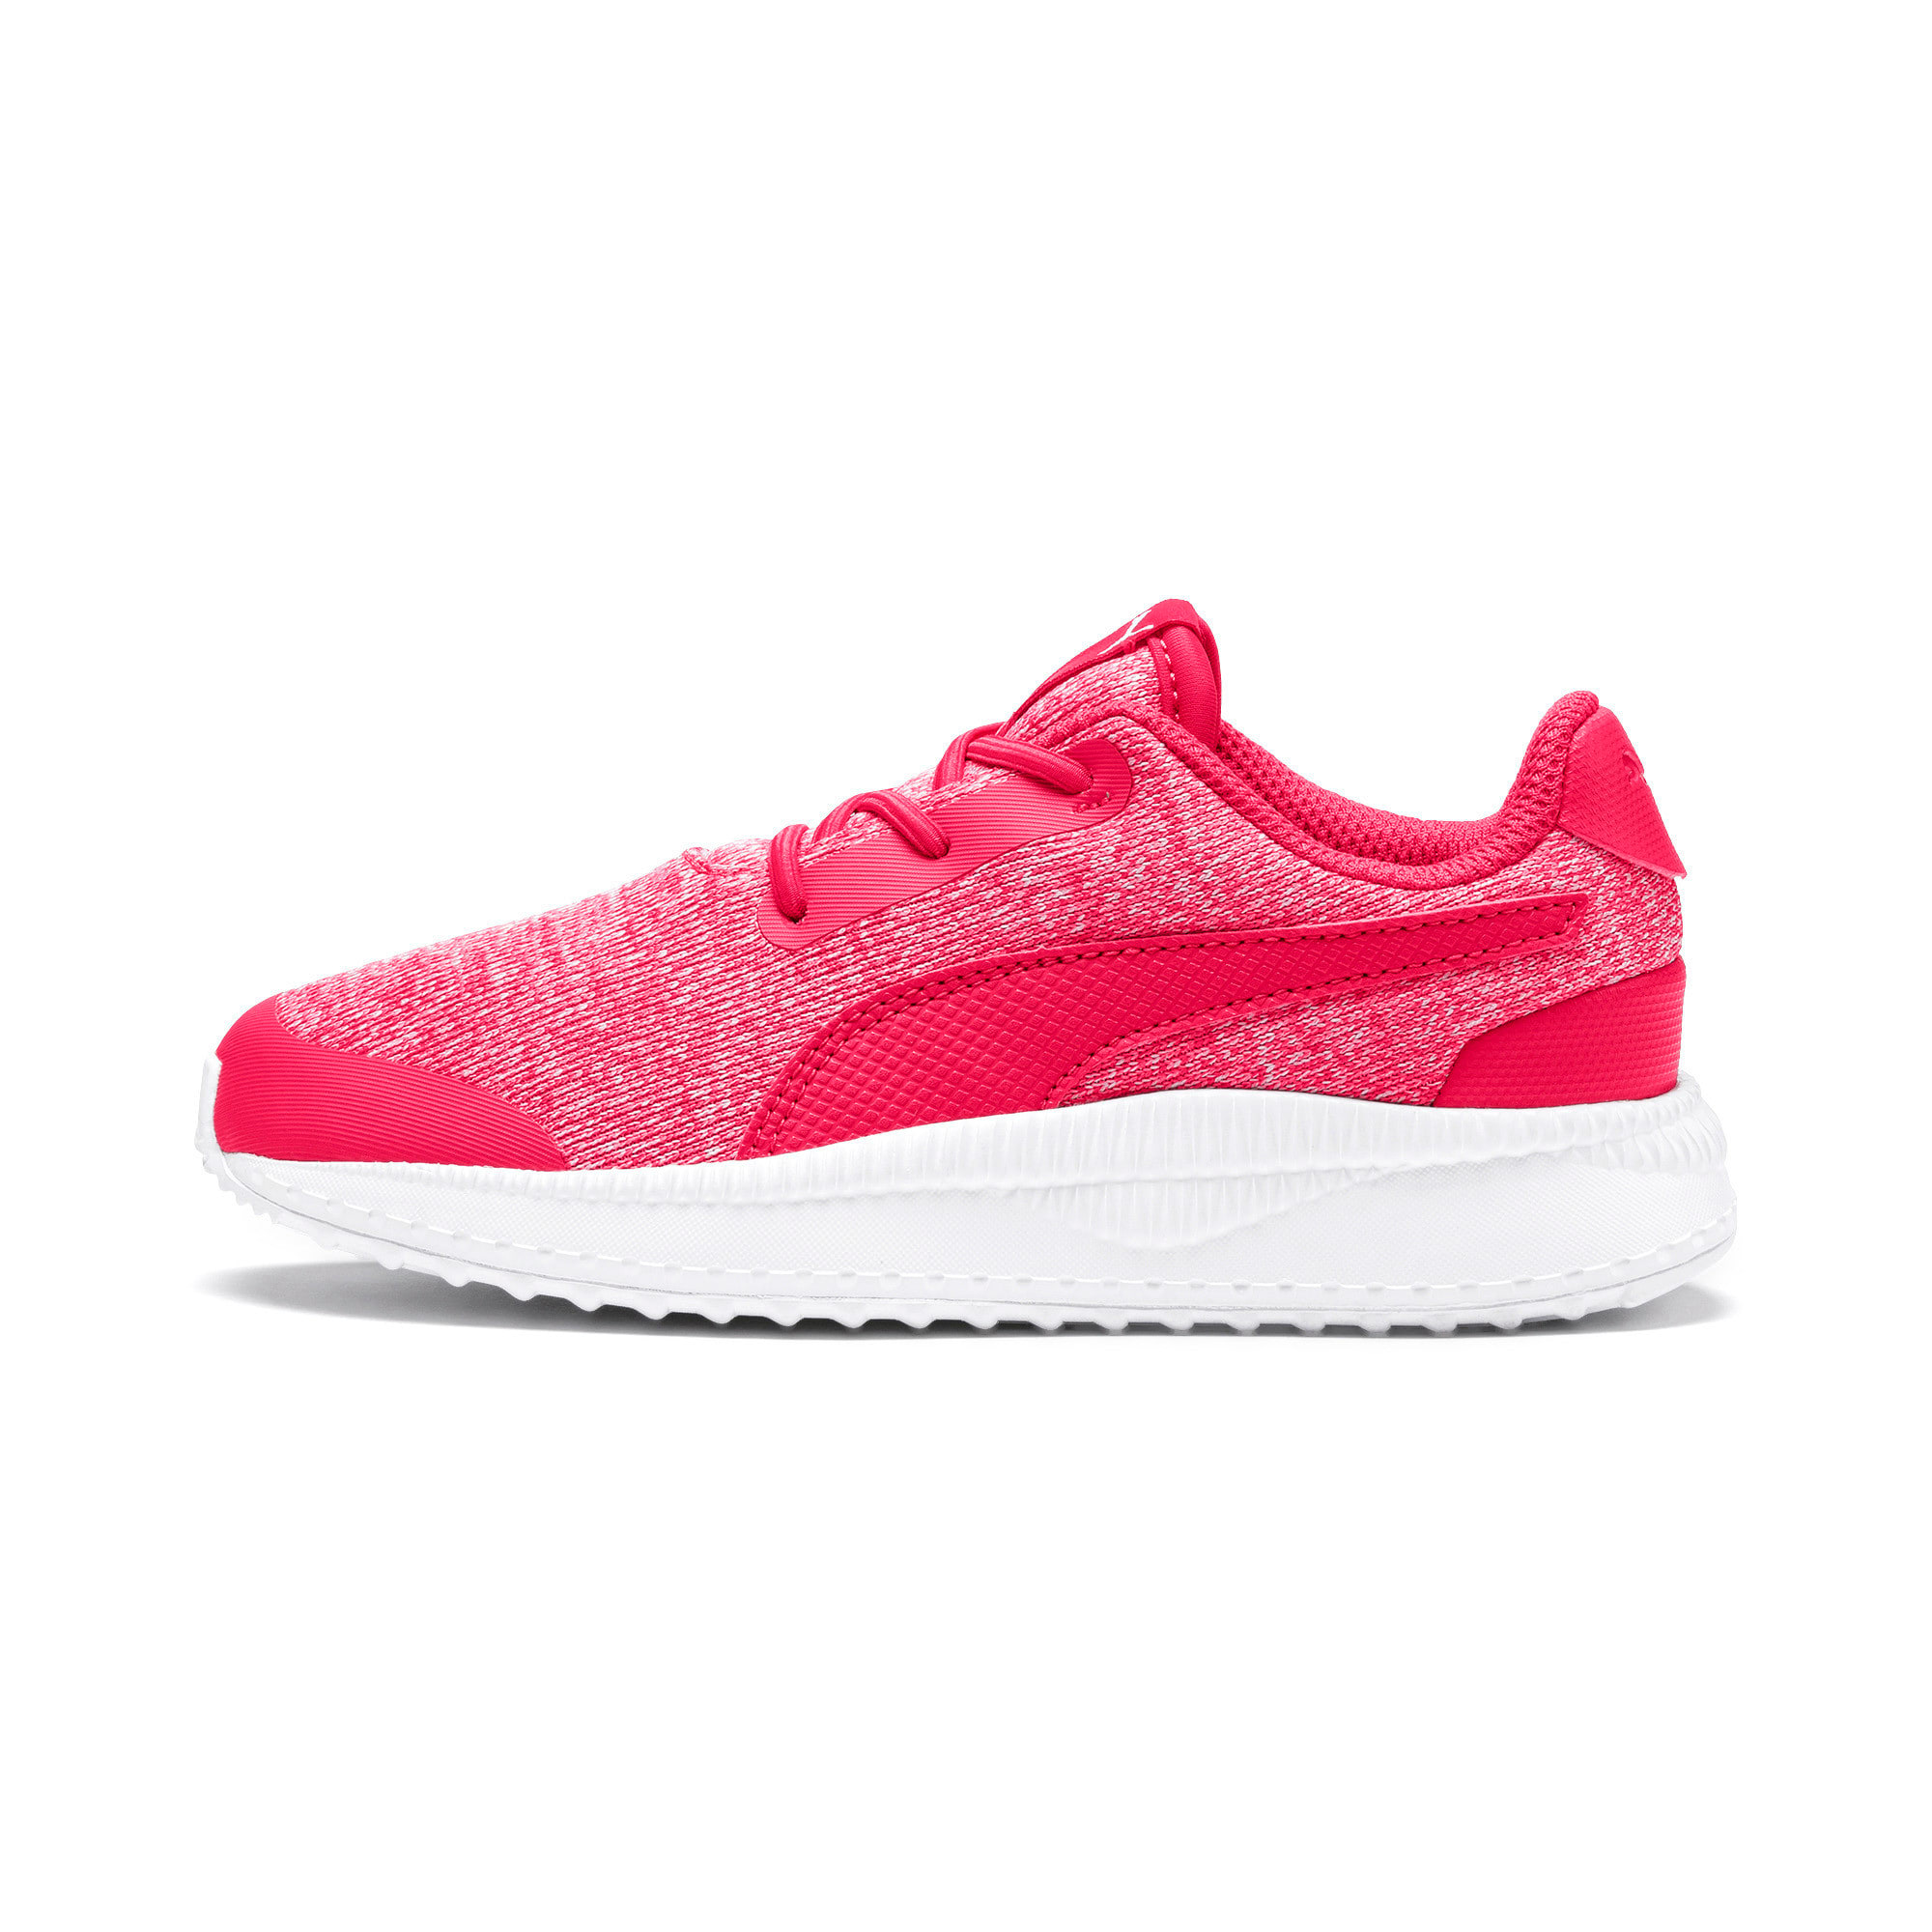 Thumbnail 1 of Pacer Next FS Knit AC Kids Sneaker, Nrgy Rose-Puma White, medium